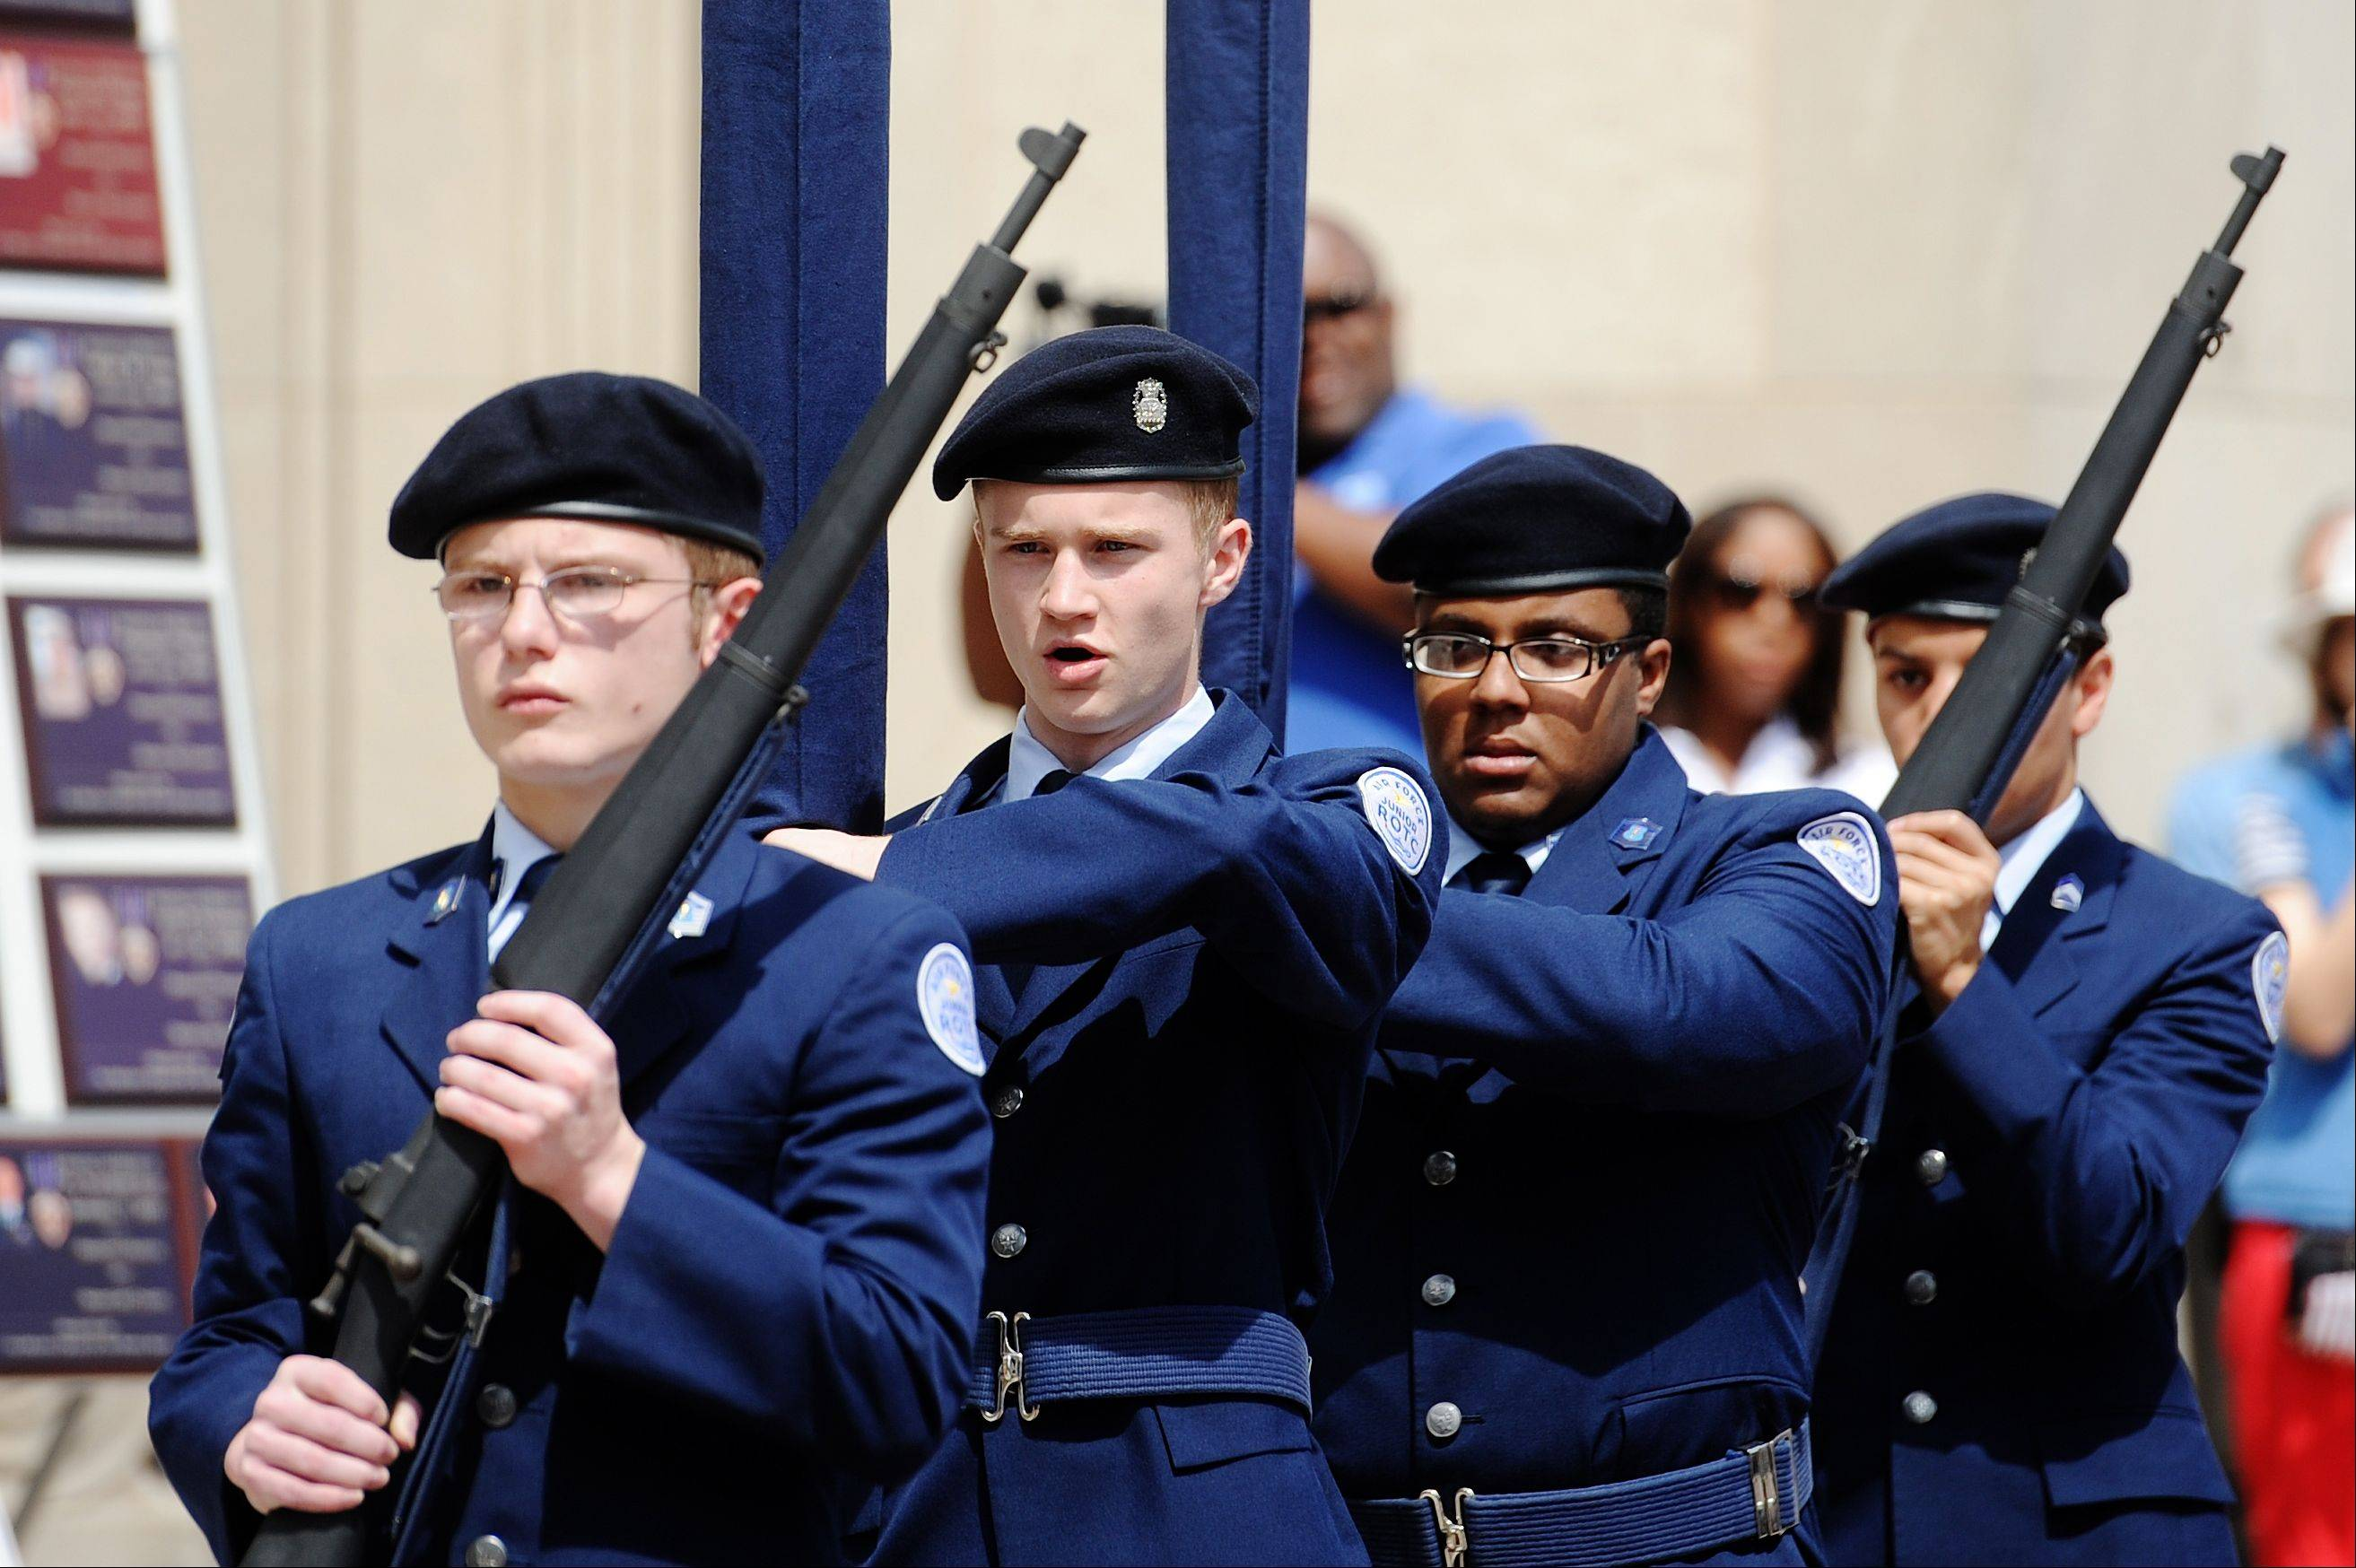 The E.C. Glass AFJROTC color guard presents the colors to begin the Memorial Day observance, Monday, May 27, 2013 in Lynchburg, Va.